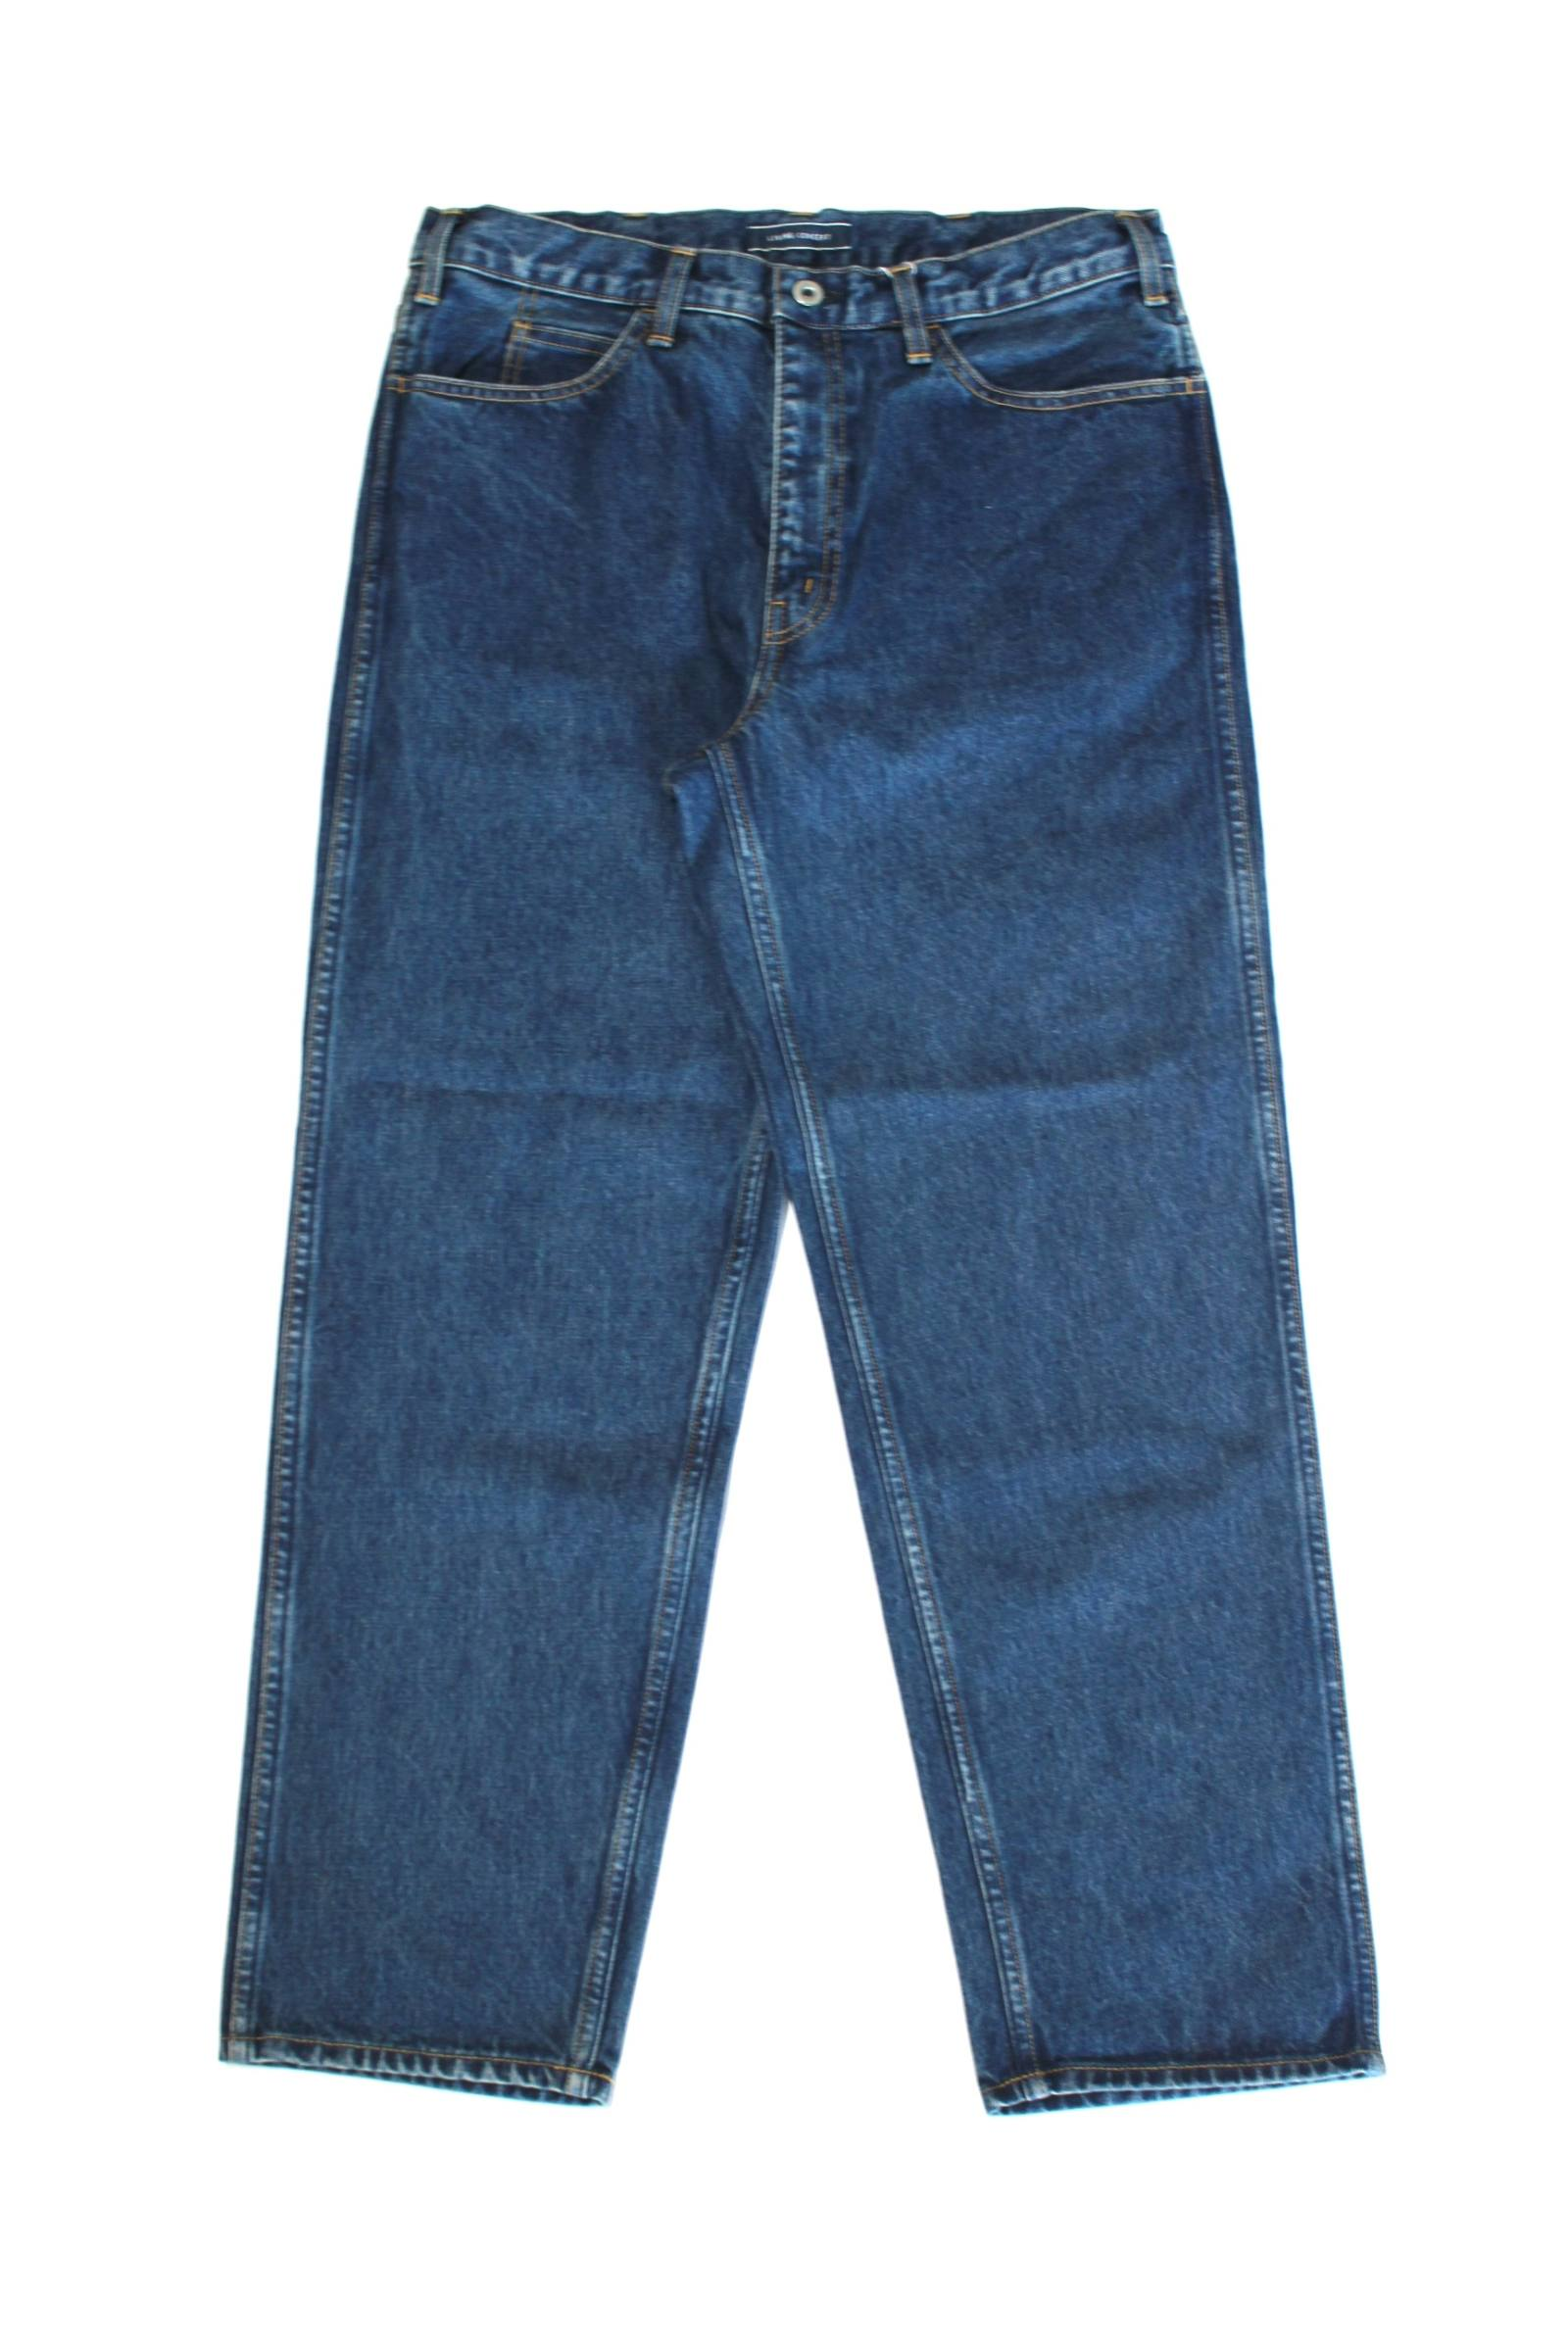 5POCKET WIDE DENIM PANTS(BIO WASH)/ワイドデニムパンツ